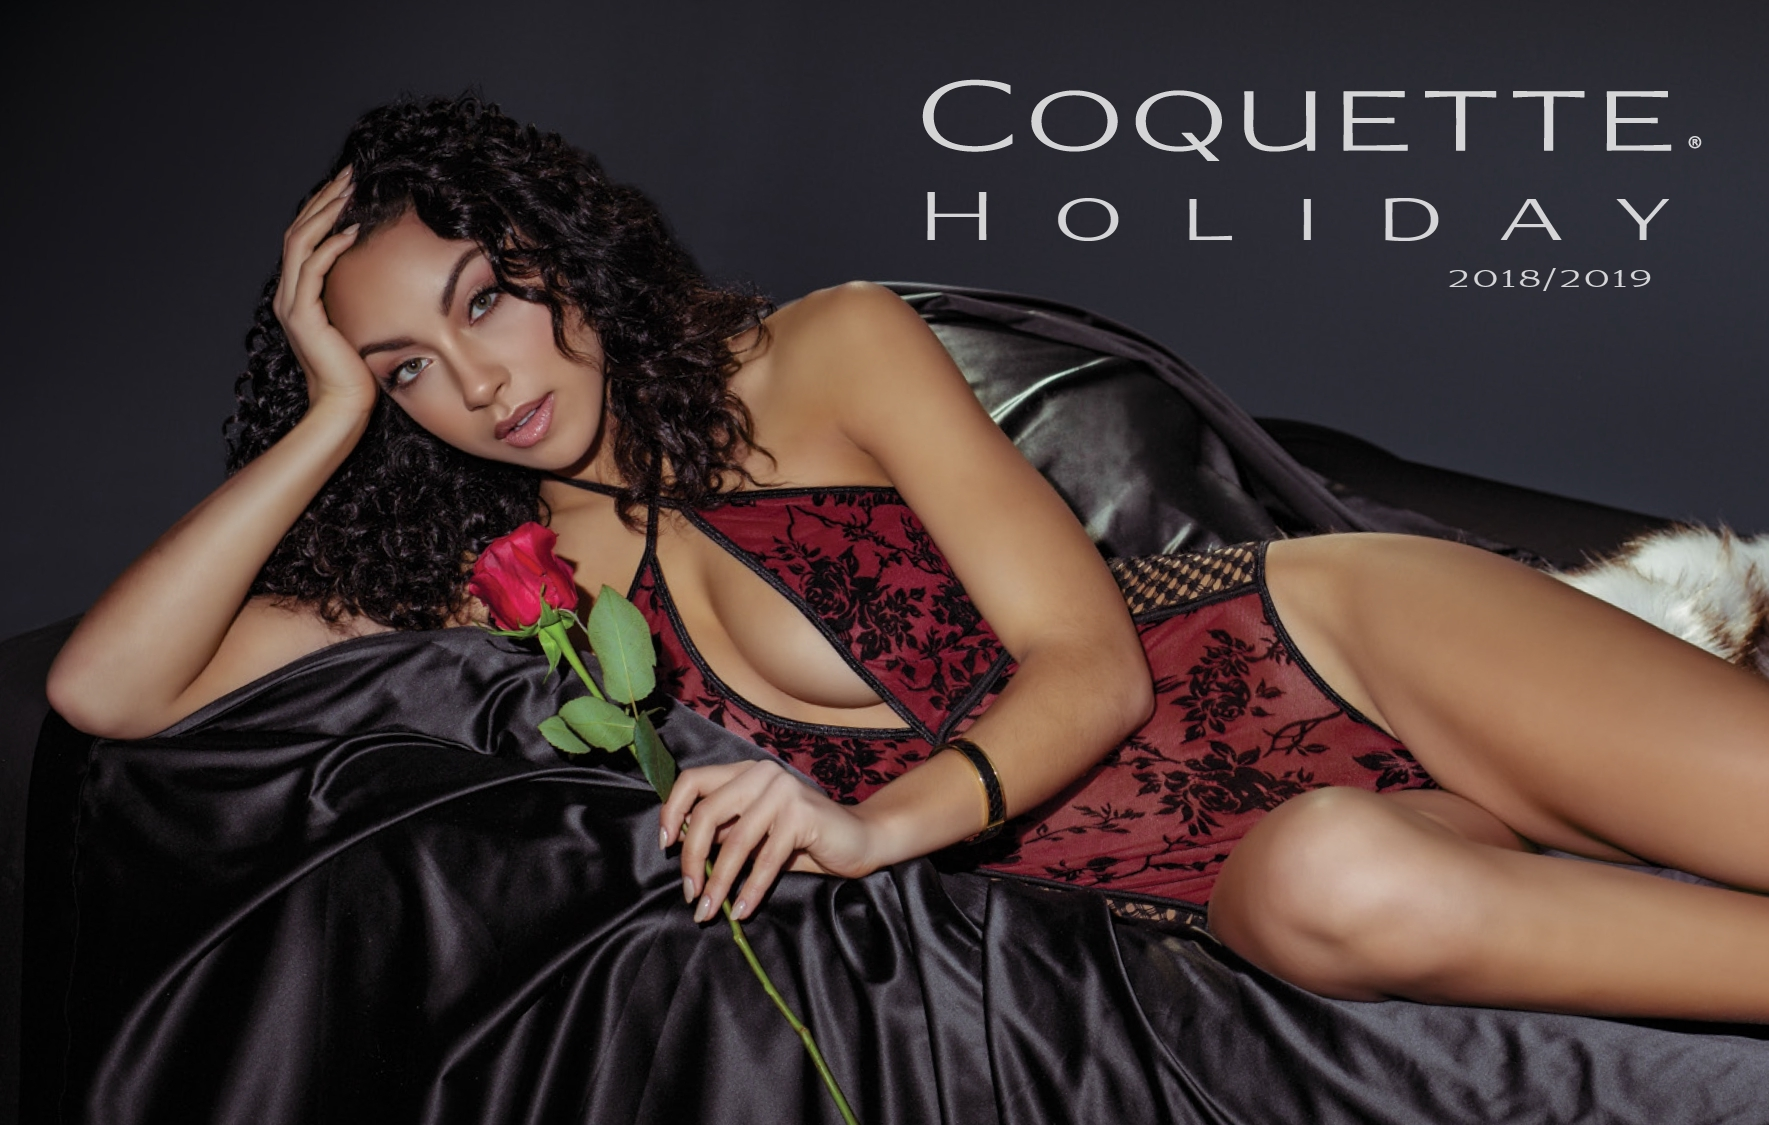 Coquette Hollyday 2018-2019